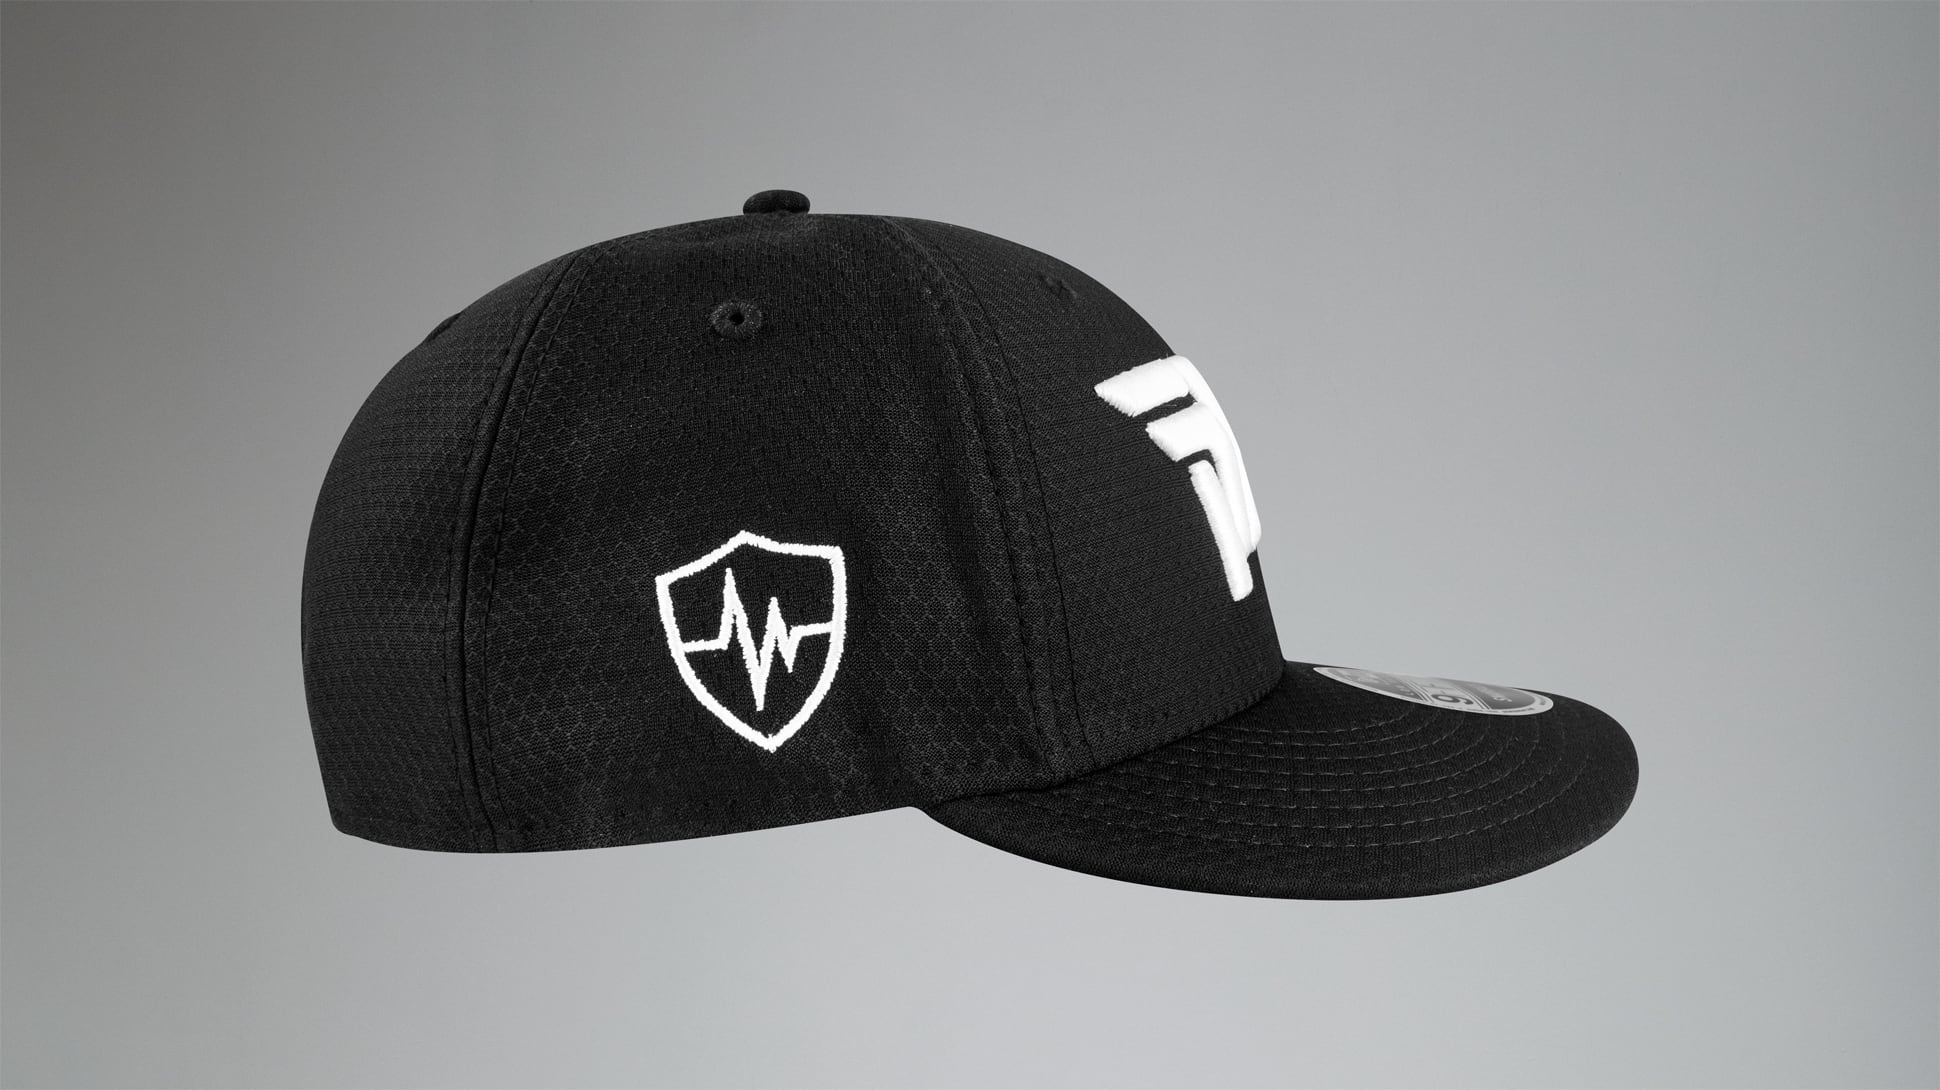 First Responders 9FIFTY Snapback Cap – Medical Service Image 4